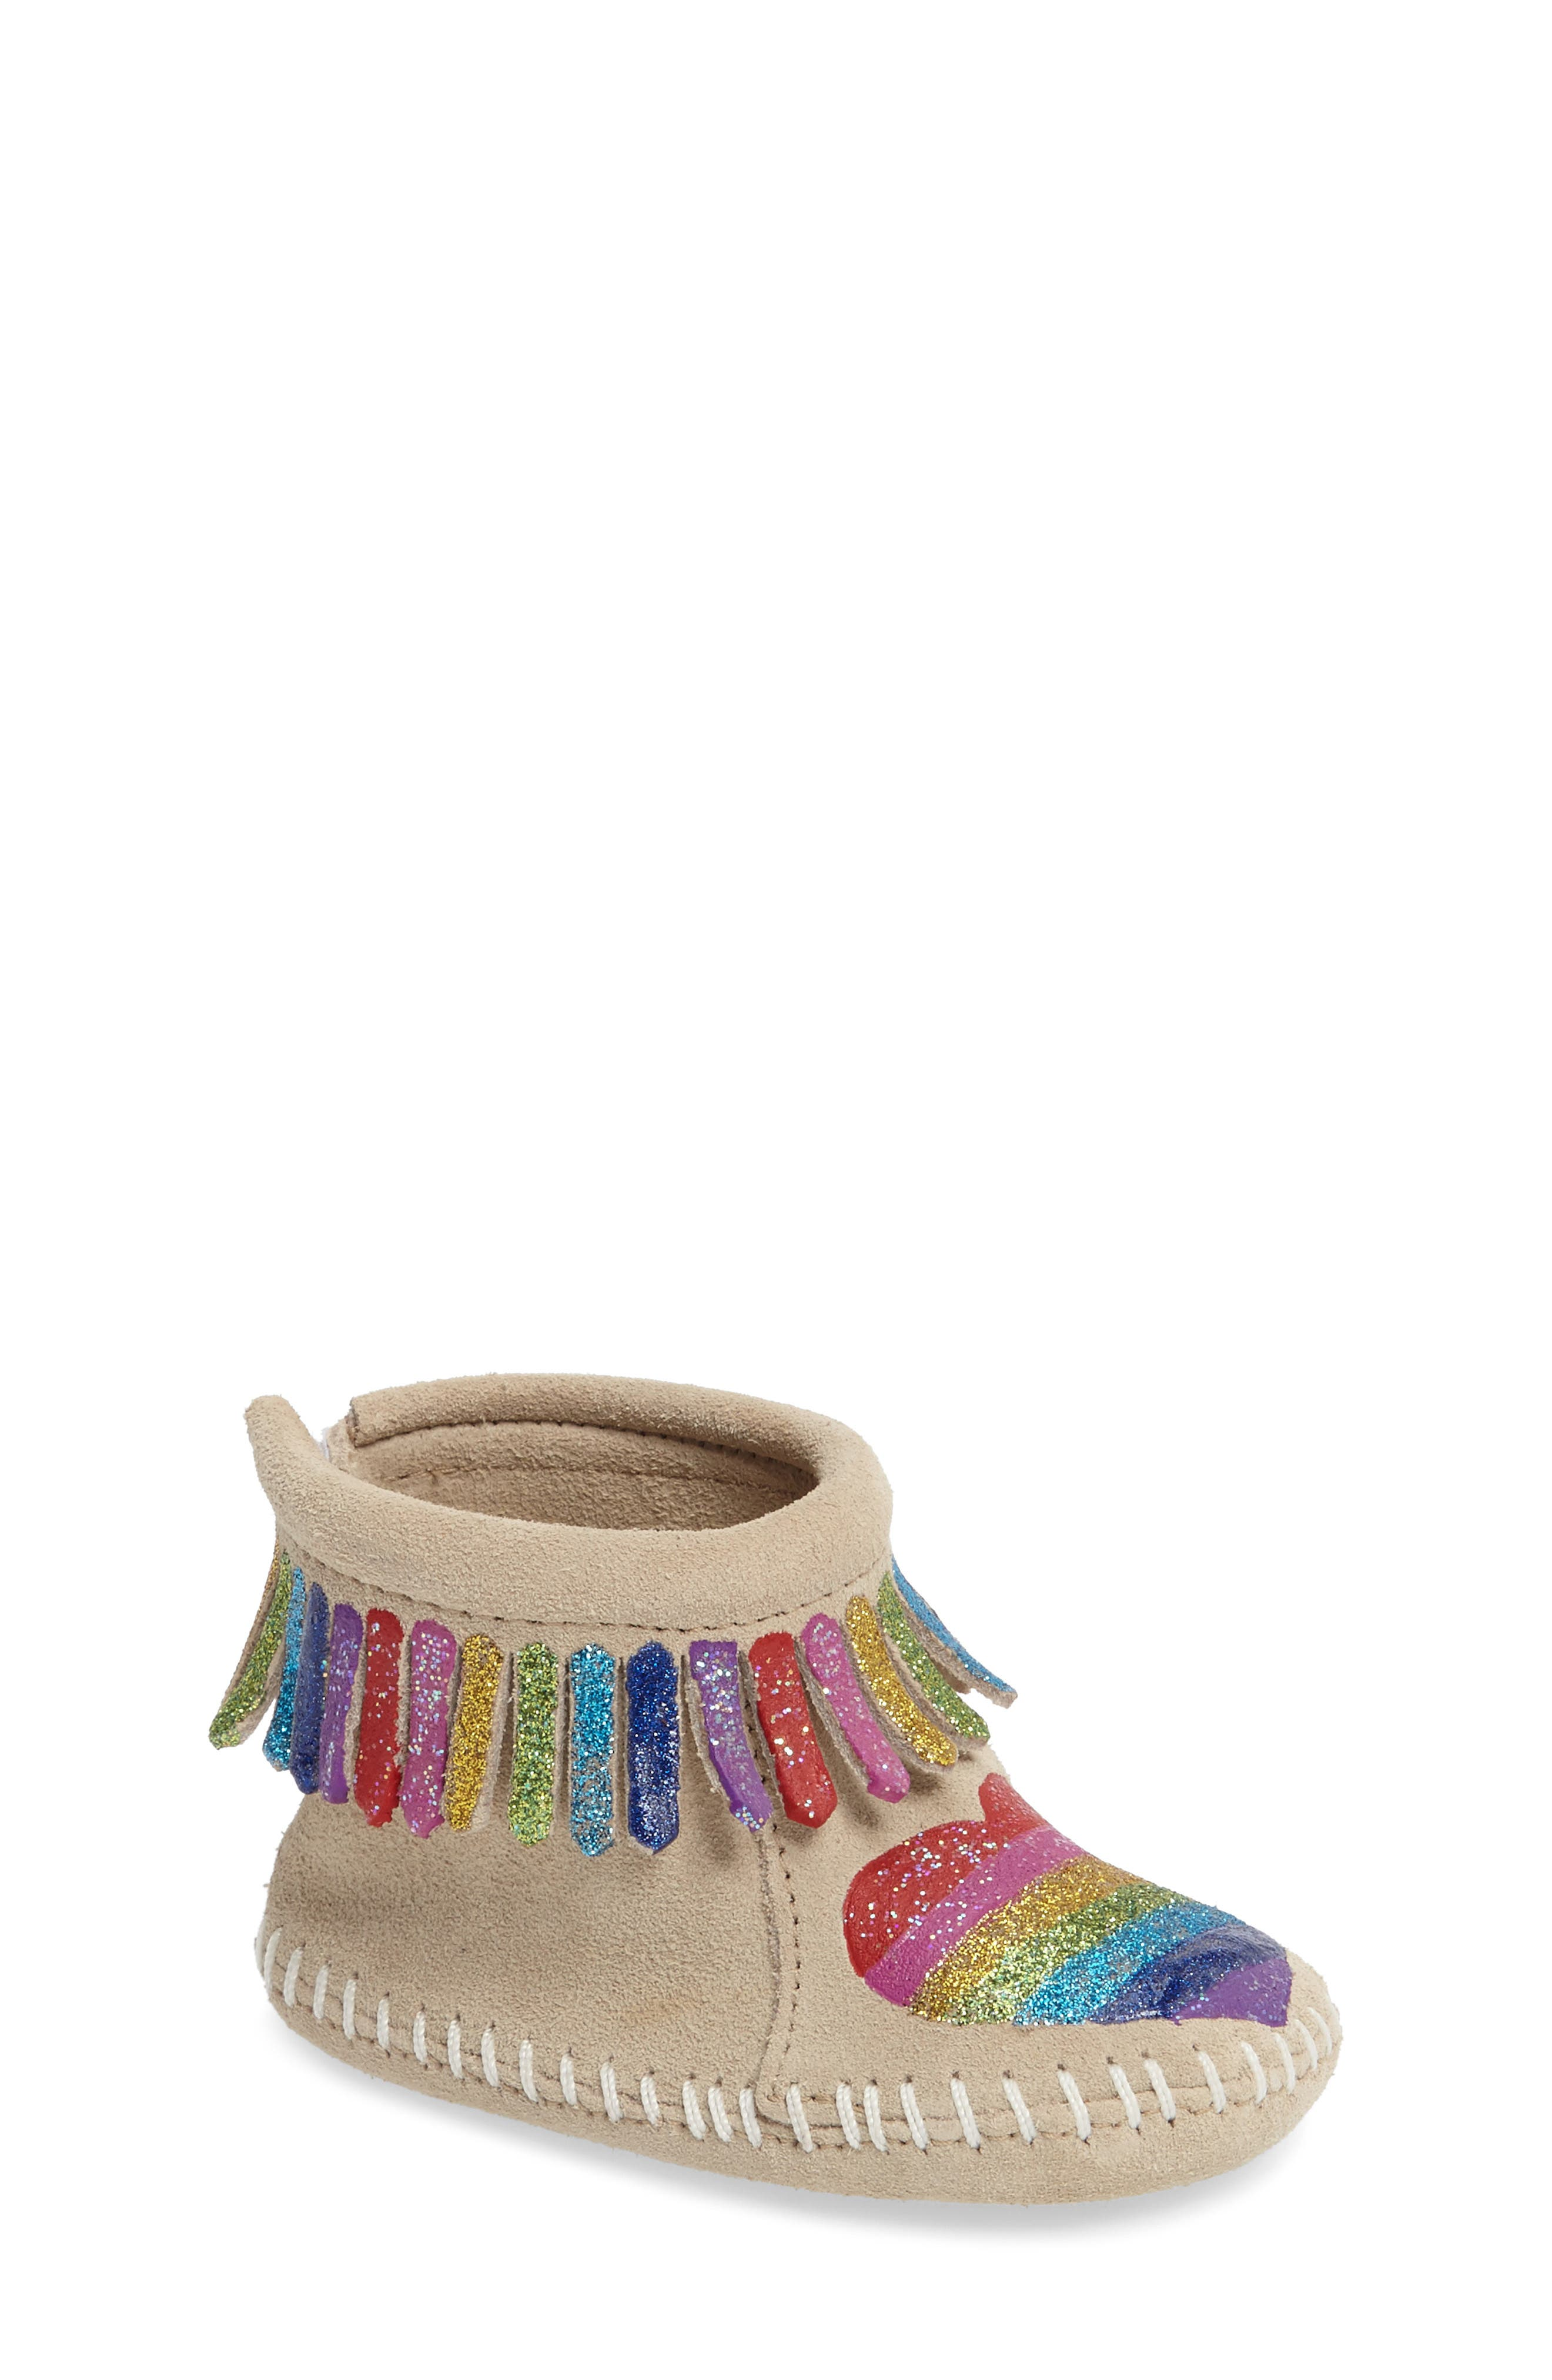 x Free Range Mama Love One Another Bootie,                         Main,                         color, Stone